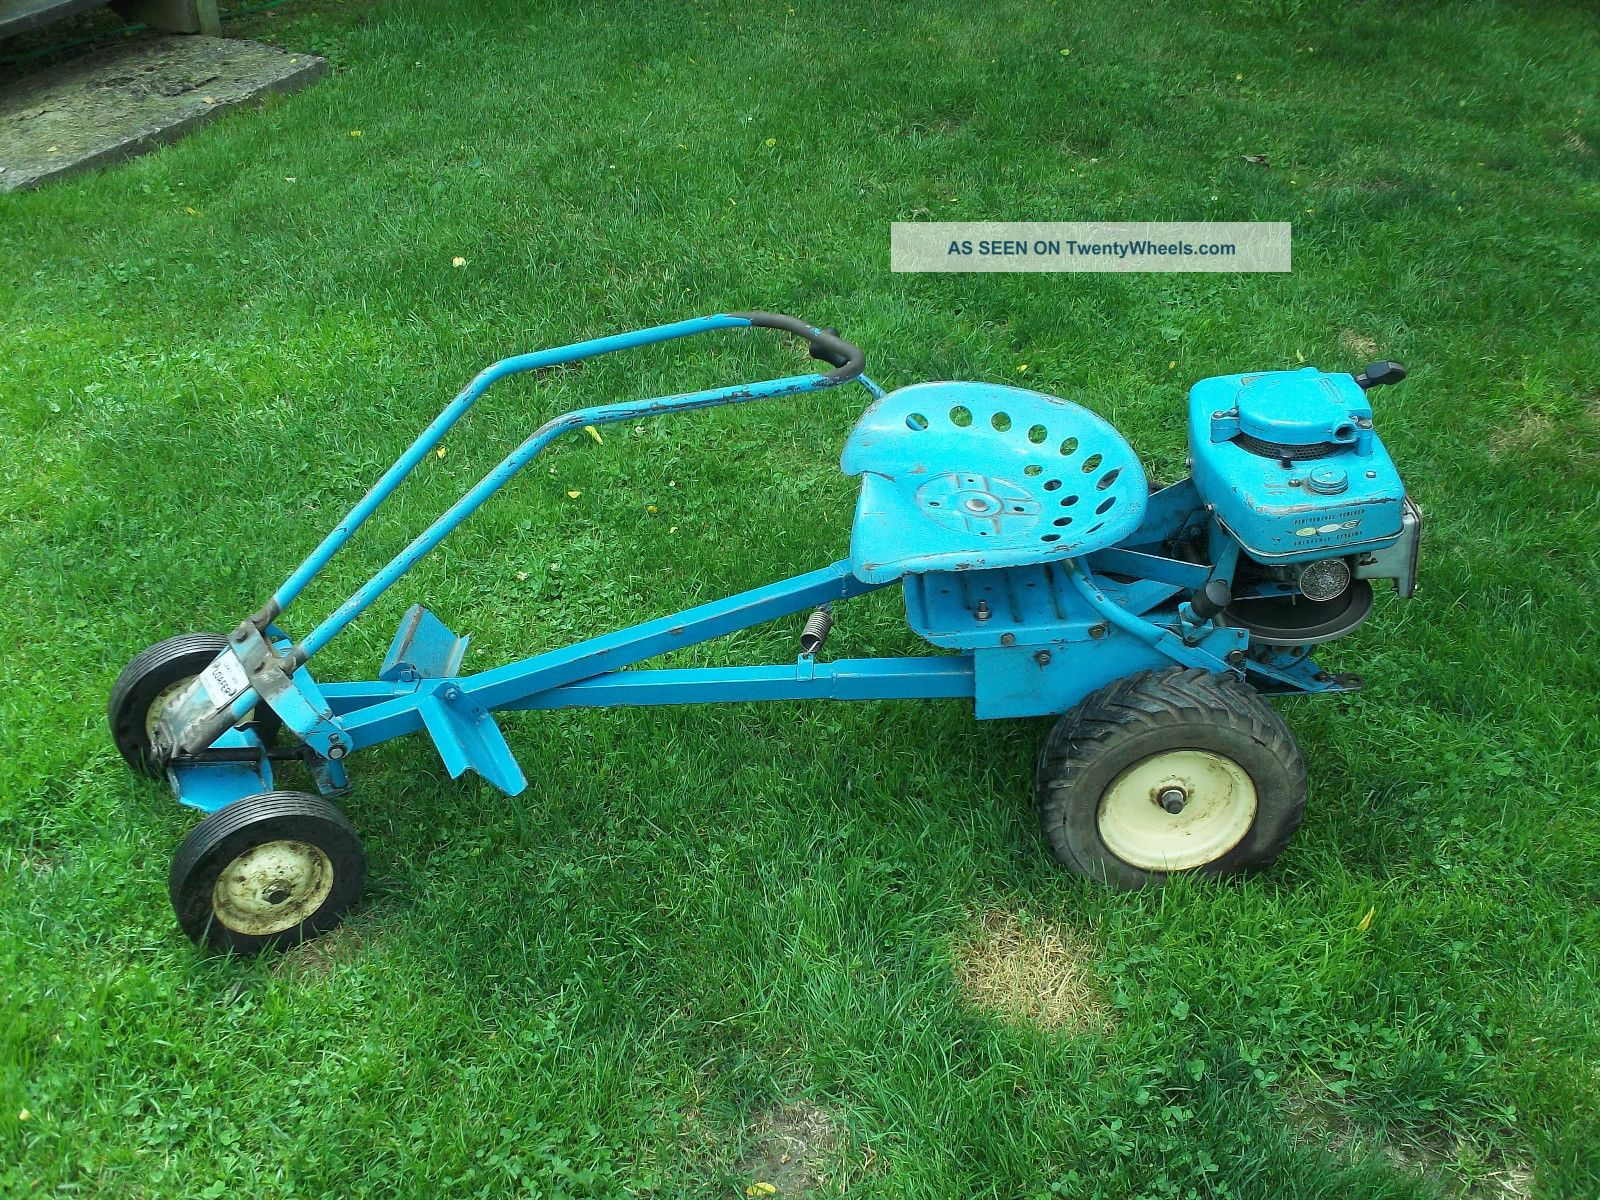 30 Lastest Old Riding Lawn Mowers Pixelmari Com